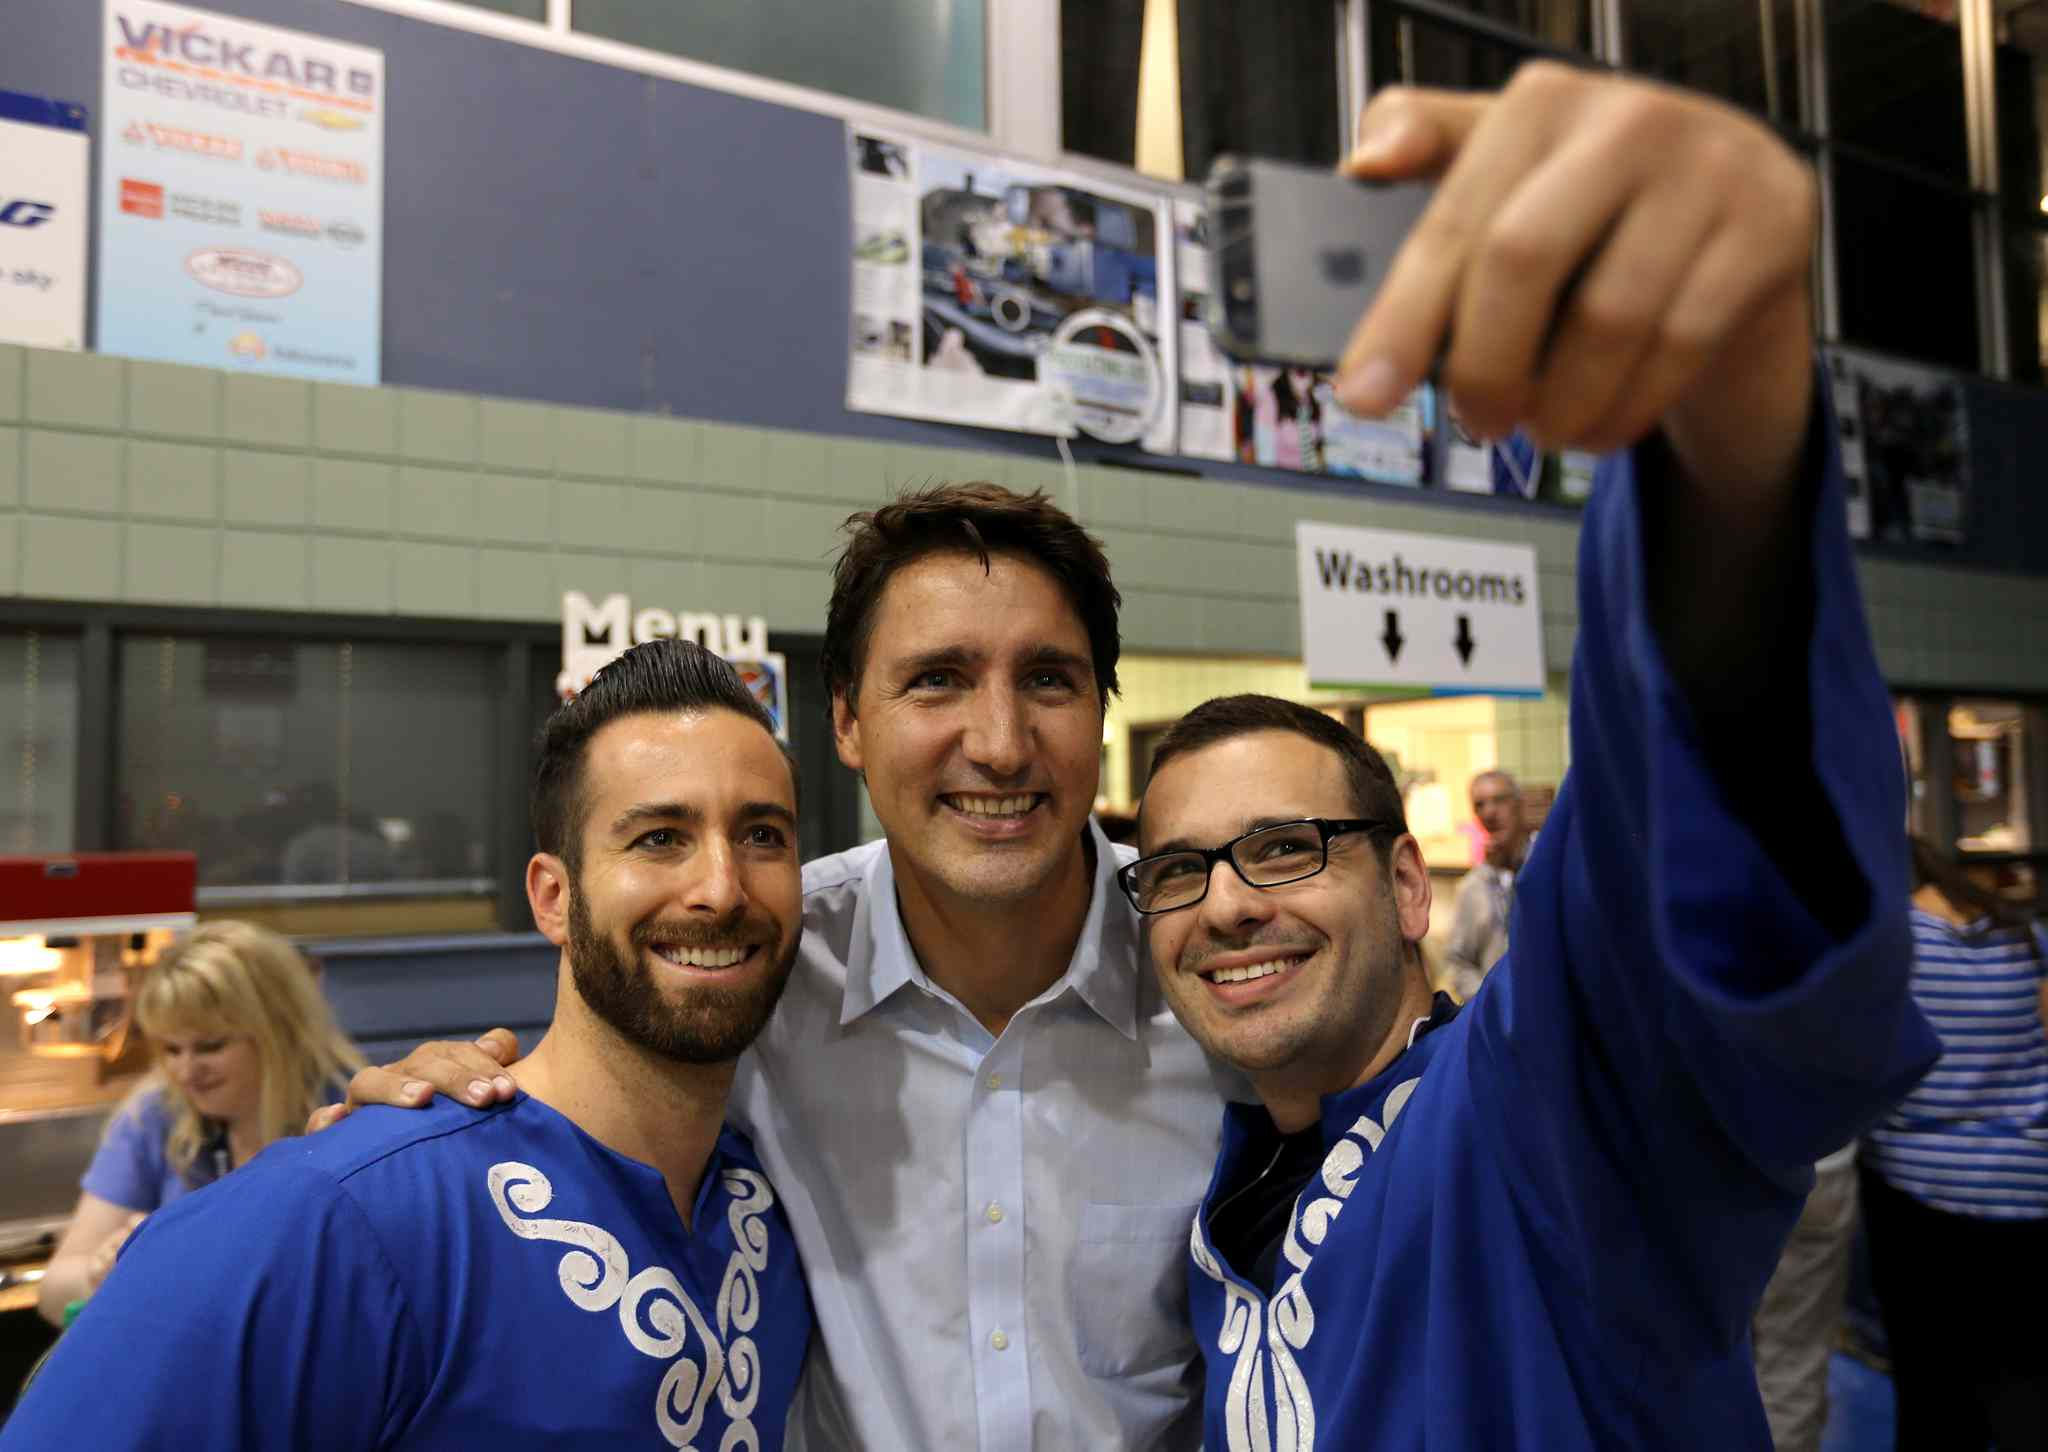 Image result for trudeau selfie photos